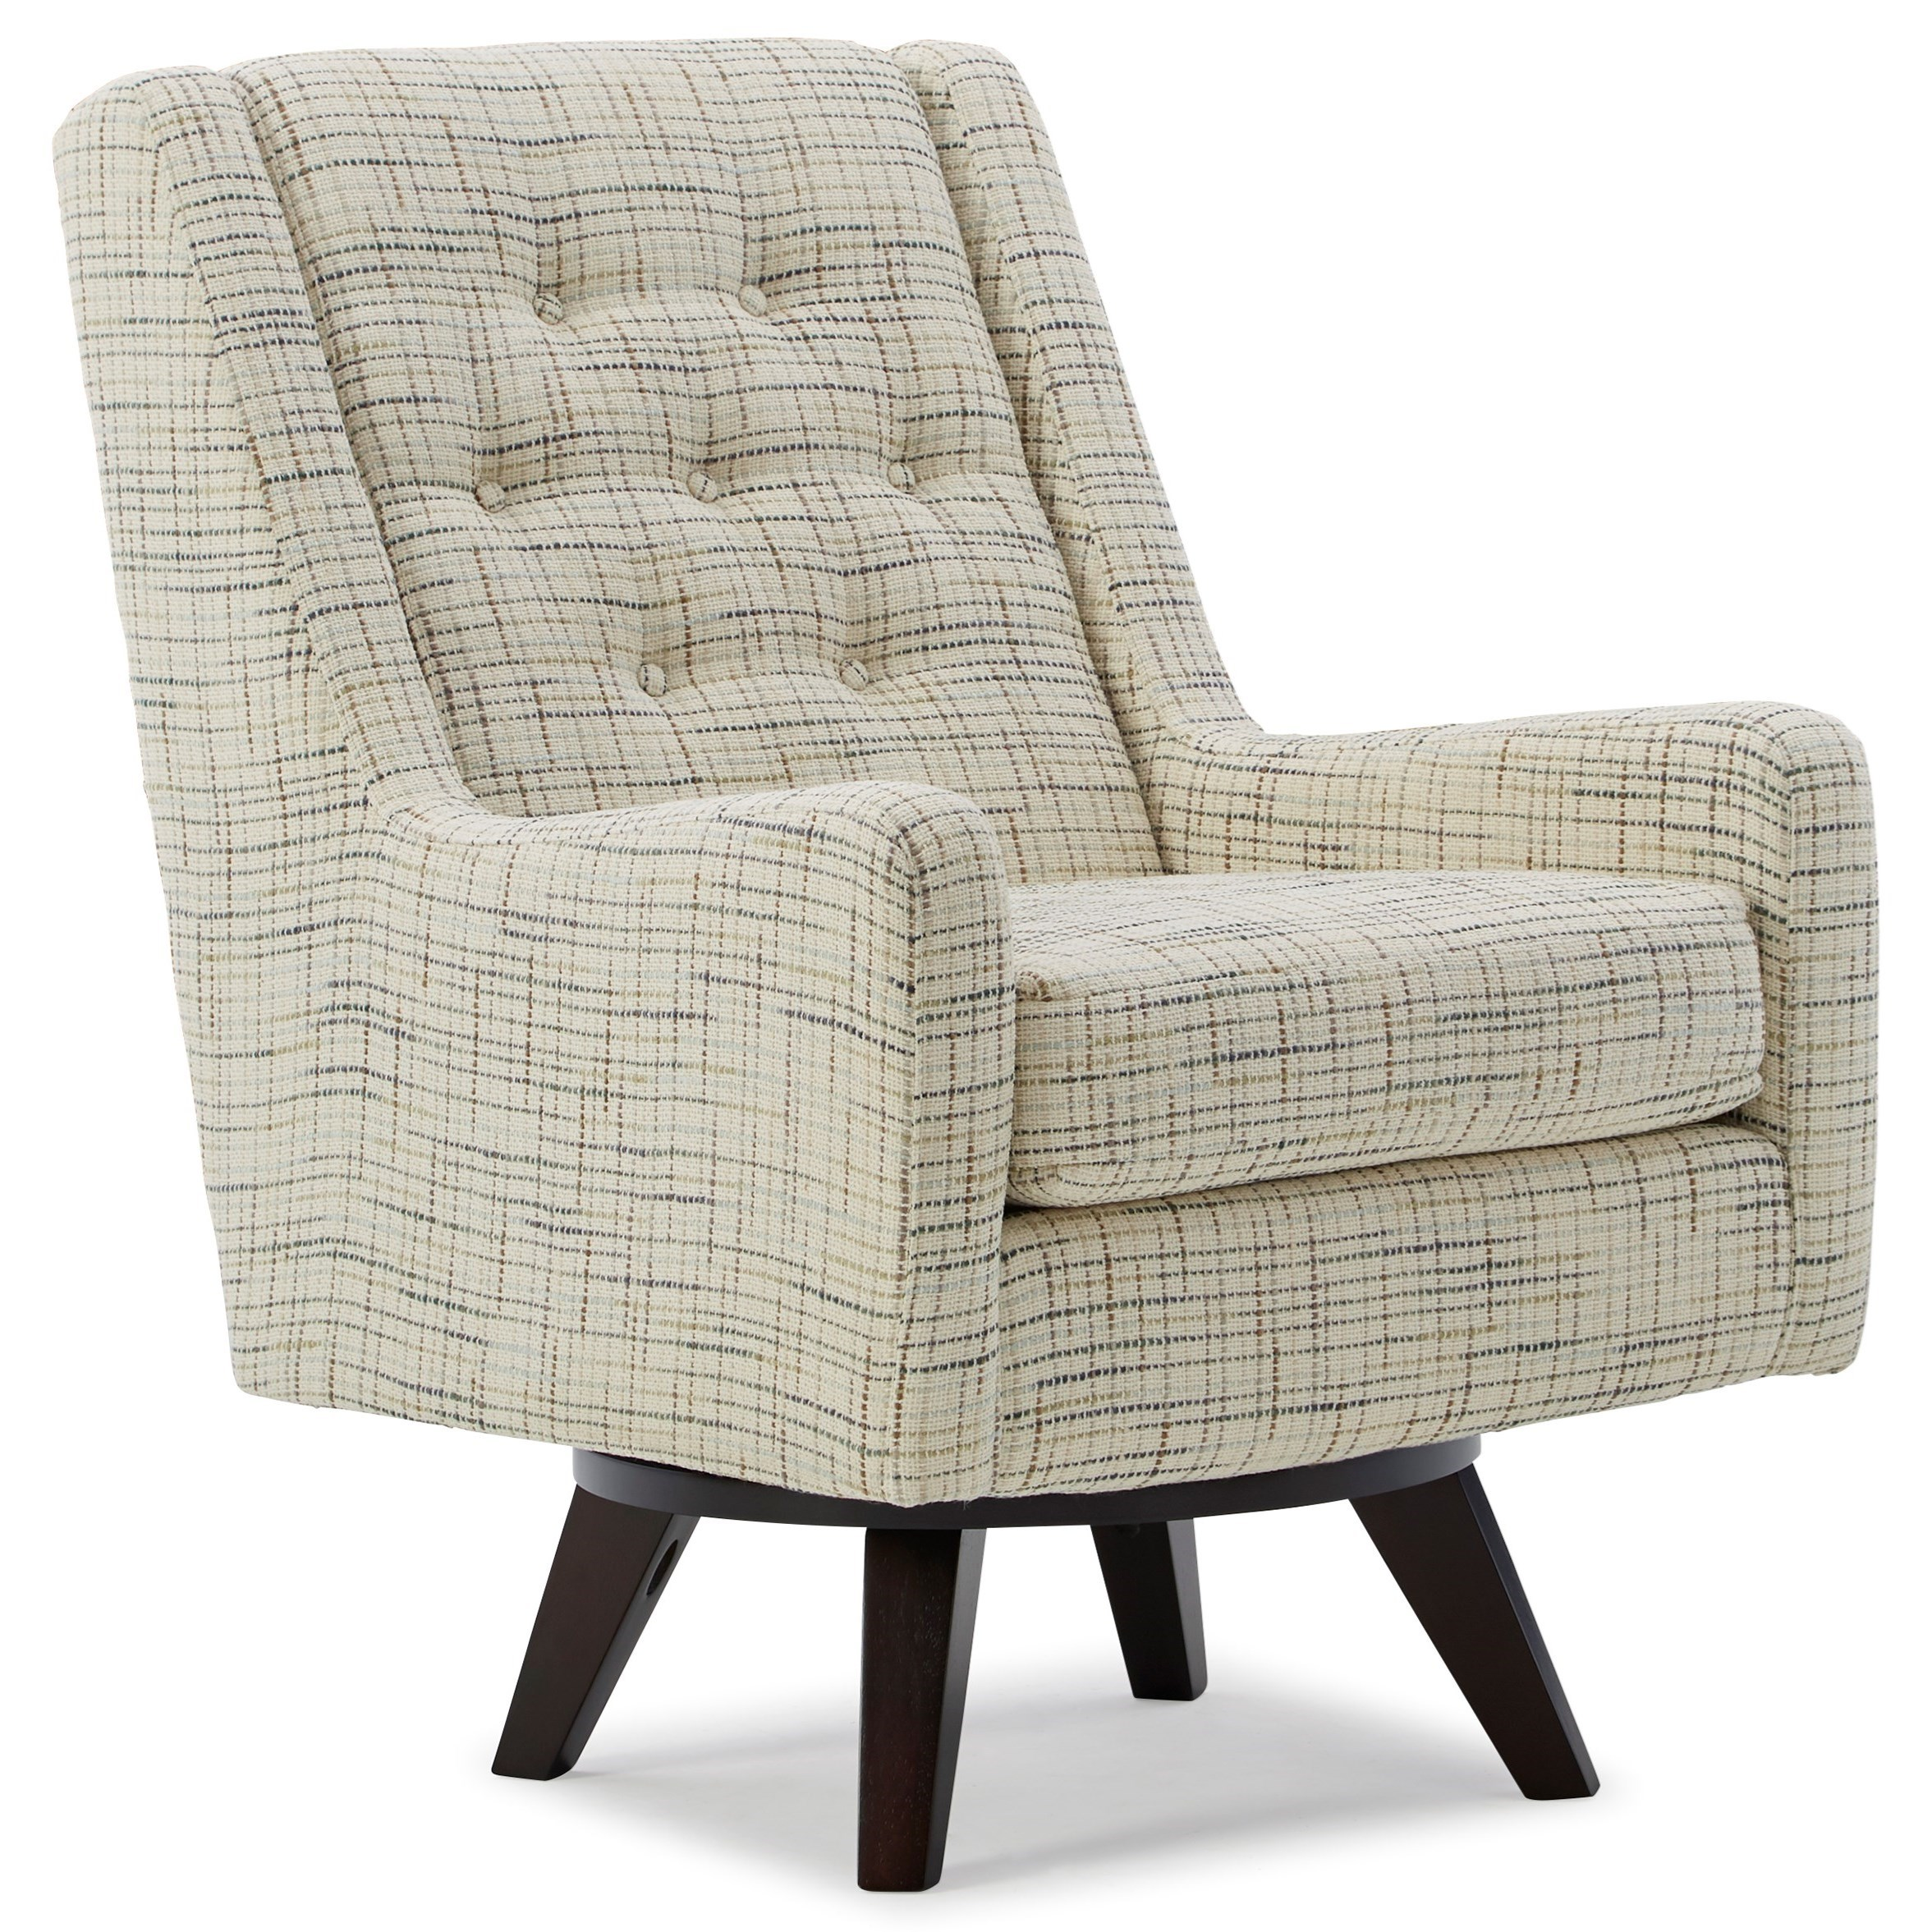 Kale Swivel Chair by Best Home Furnishings at Walker's Furniture